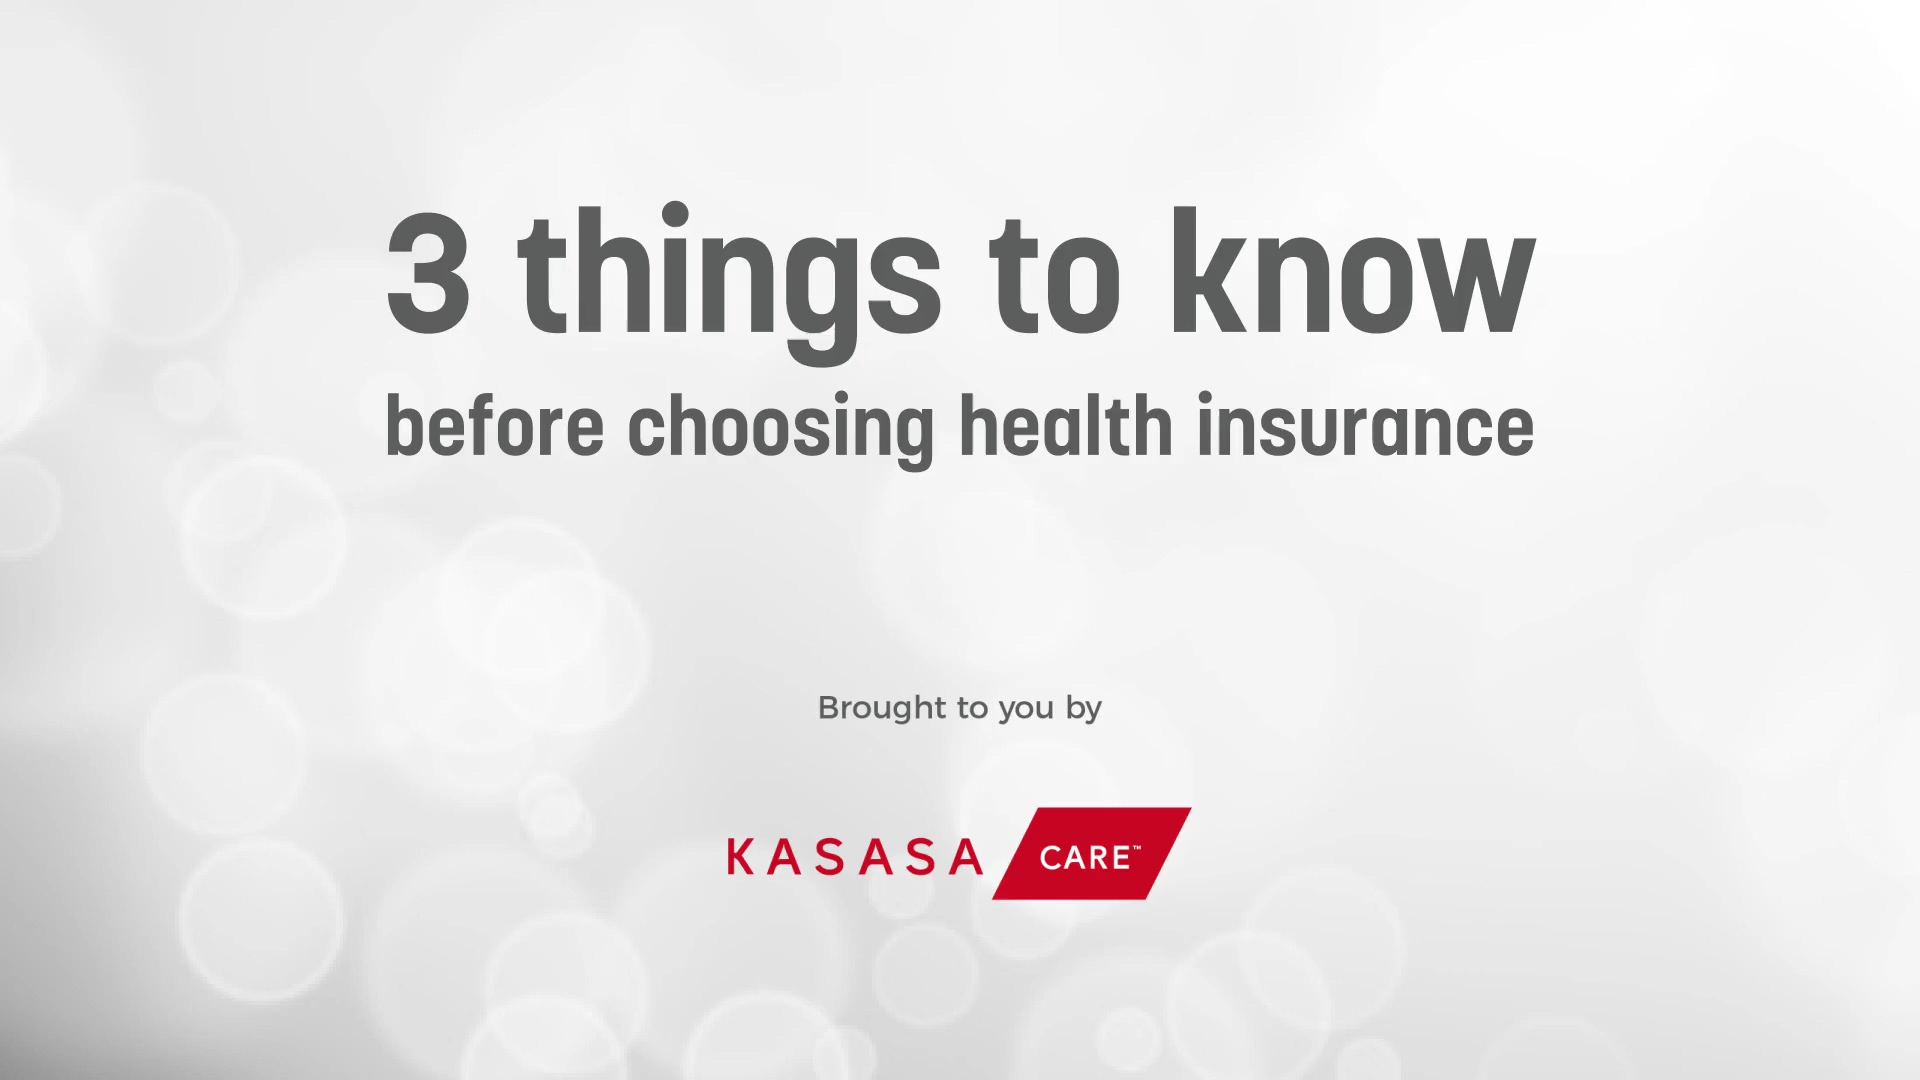 KCARE-HealthInsurance-FINAL-MASTER-001